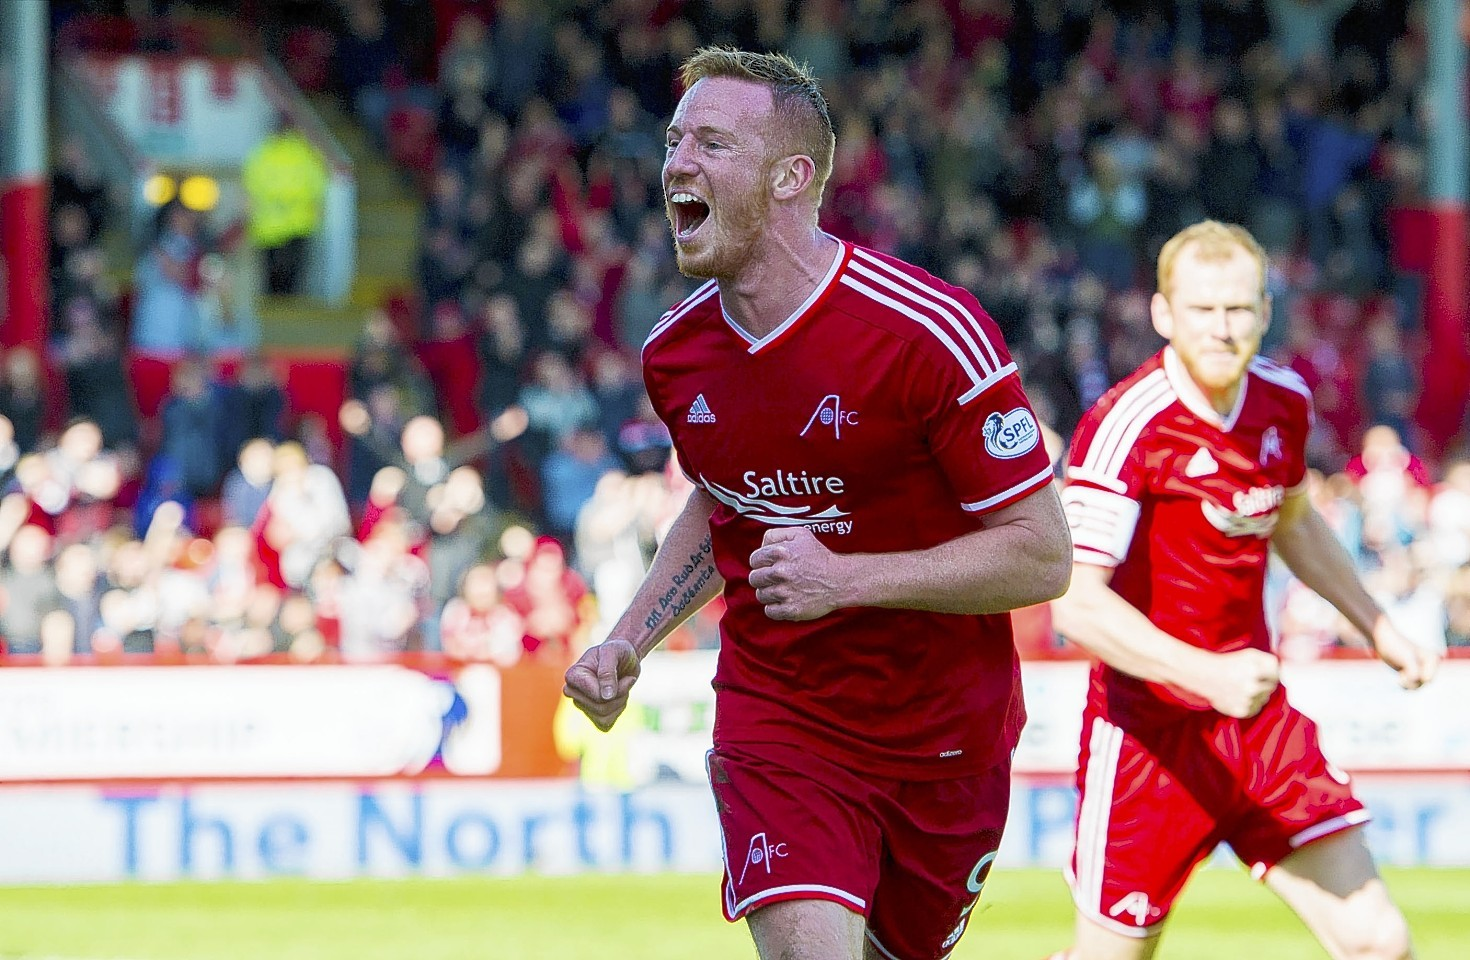 Adam Rooney has been rewarded for his 27 goals this season